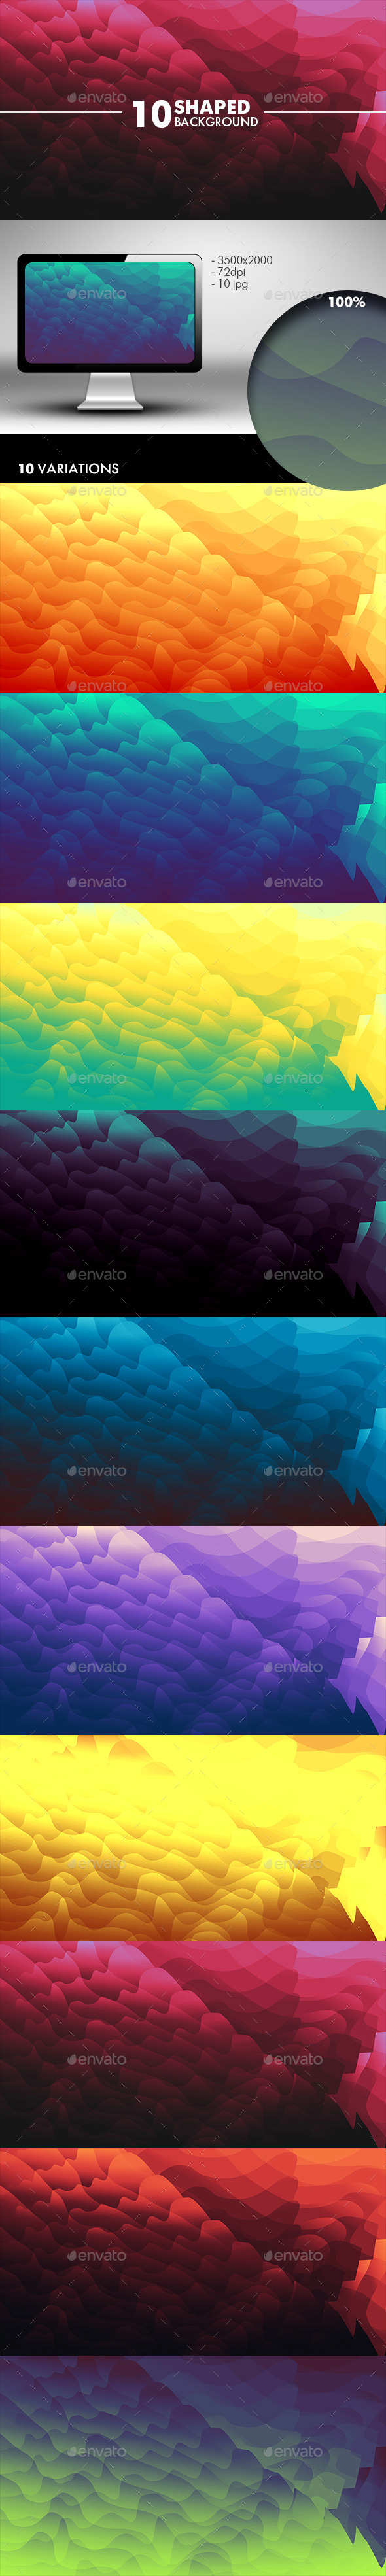 GraphicRiver Shaped Wave Background 10562417